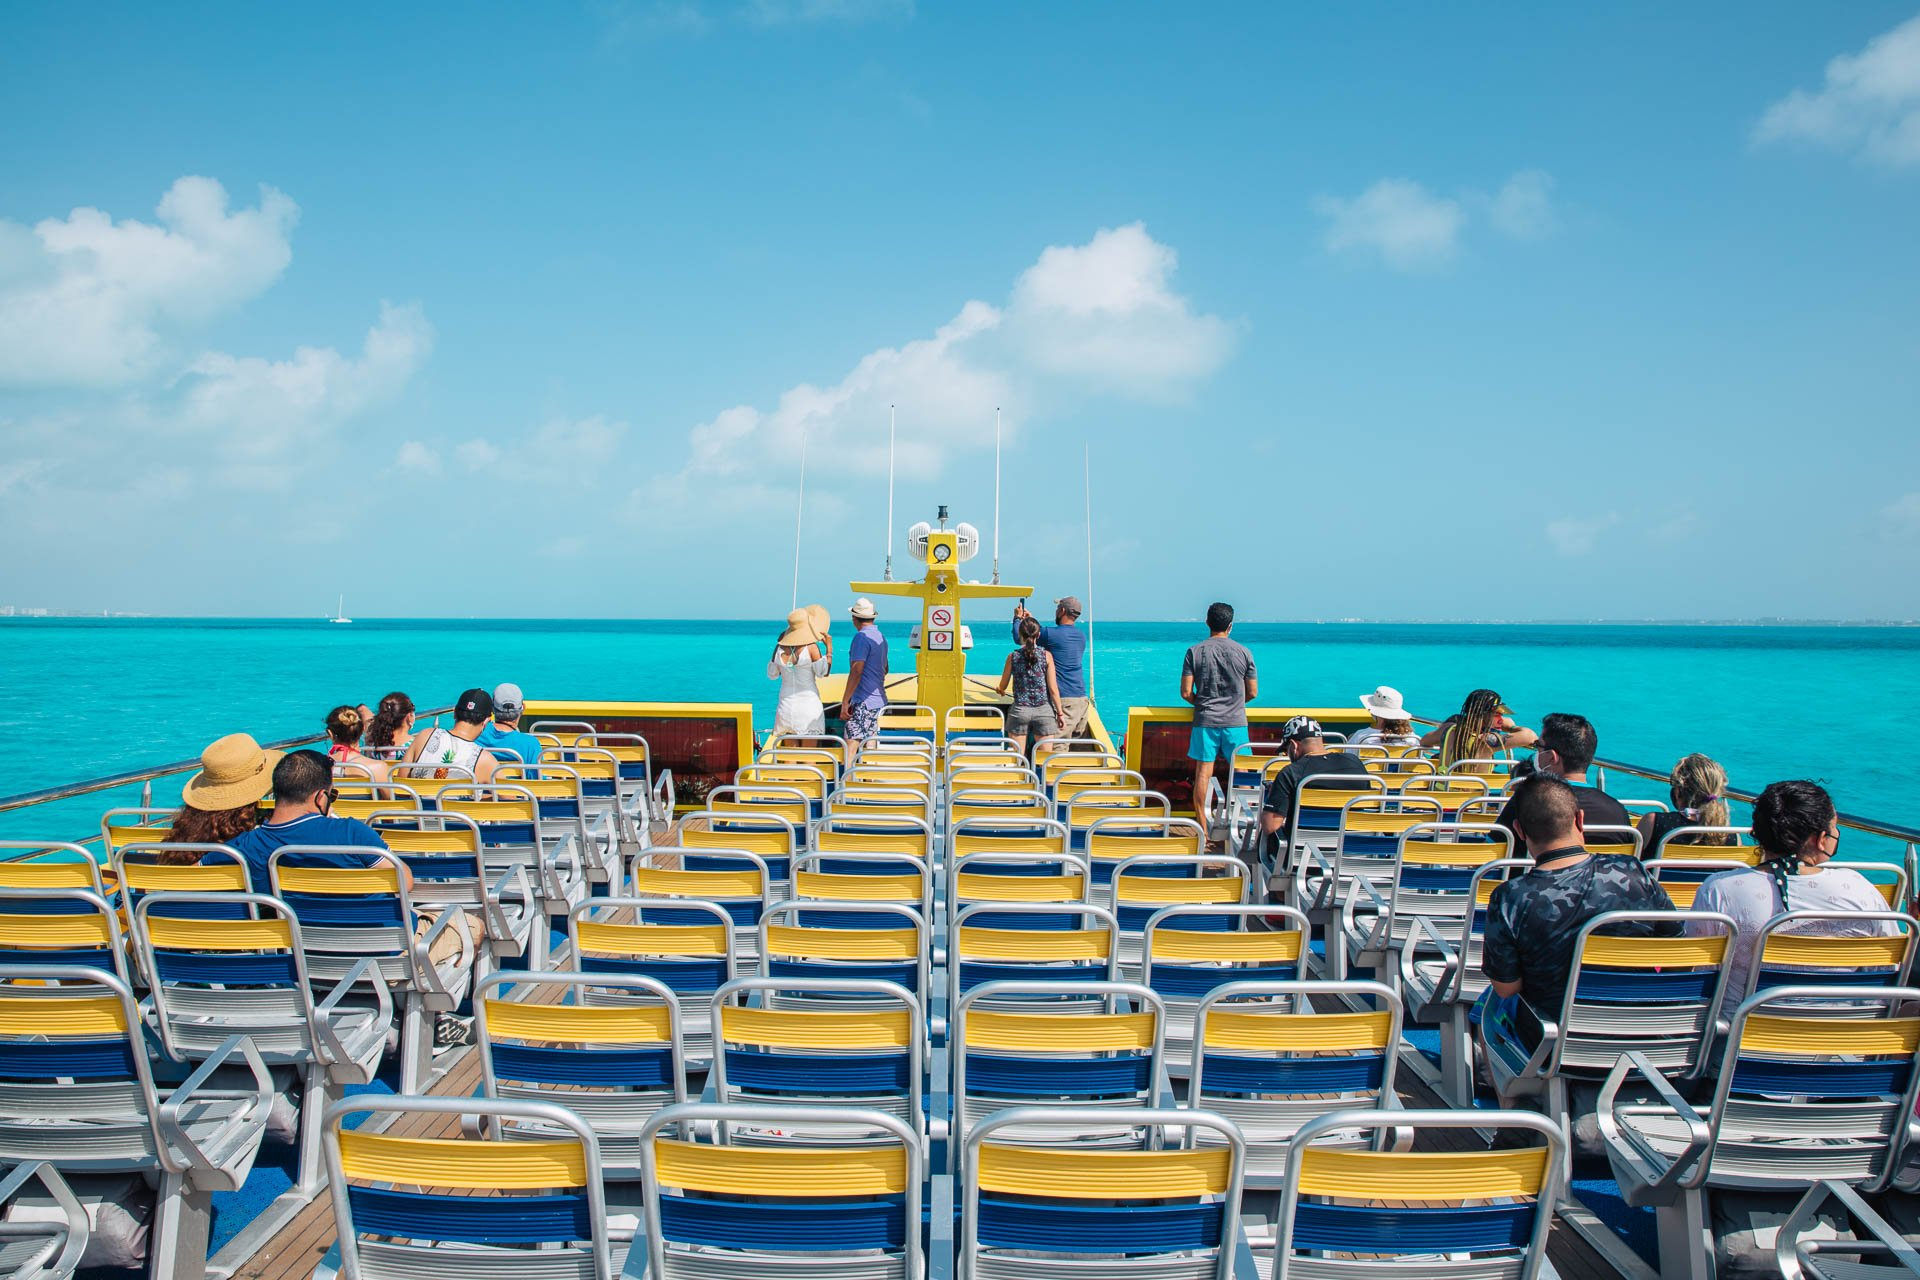 isla mujeres, things to do in isla mujeres